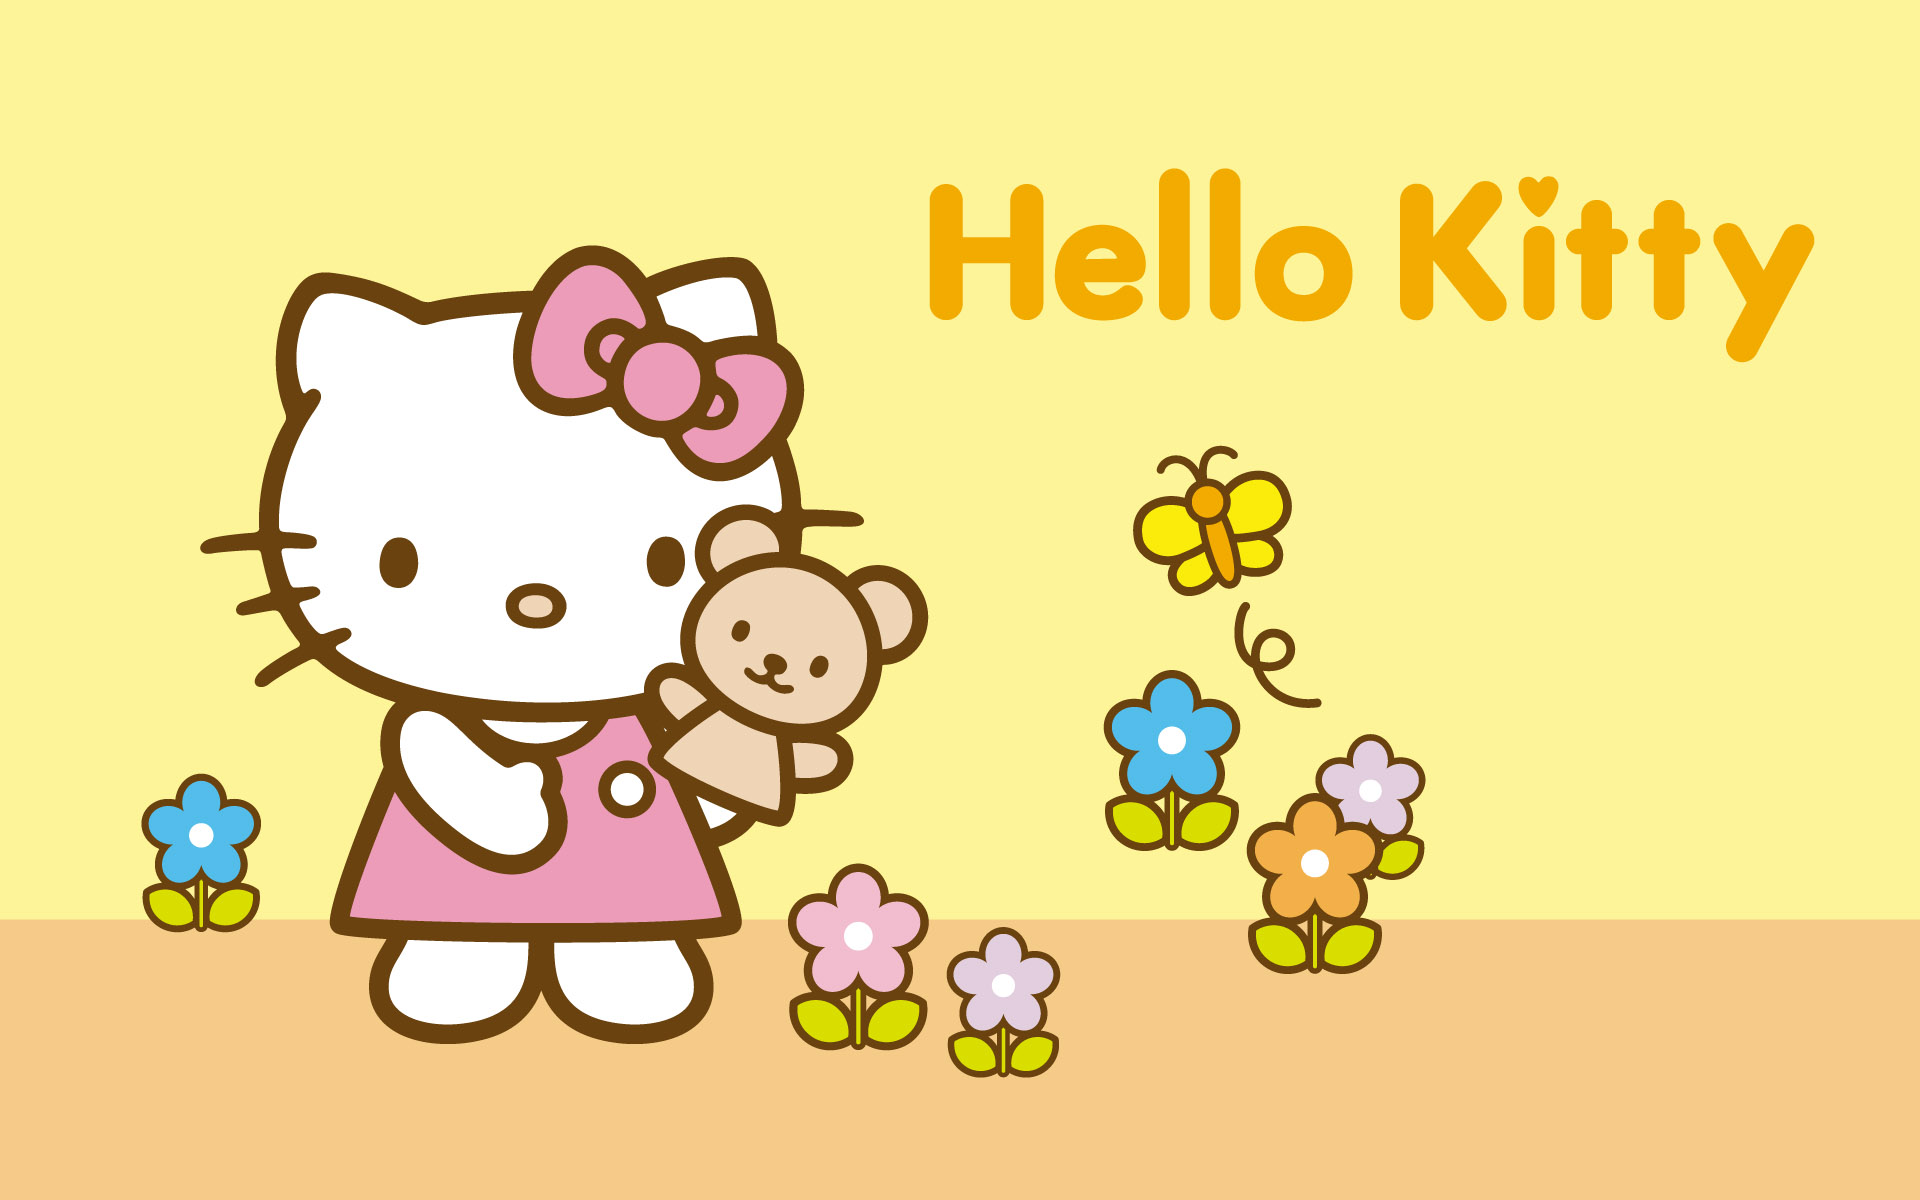 hello kitty wallpapers high quality download free